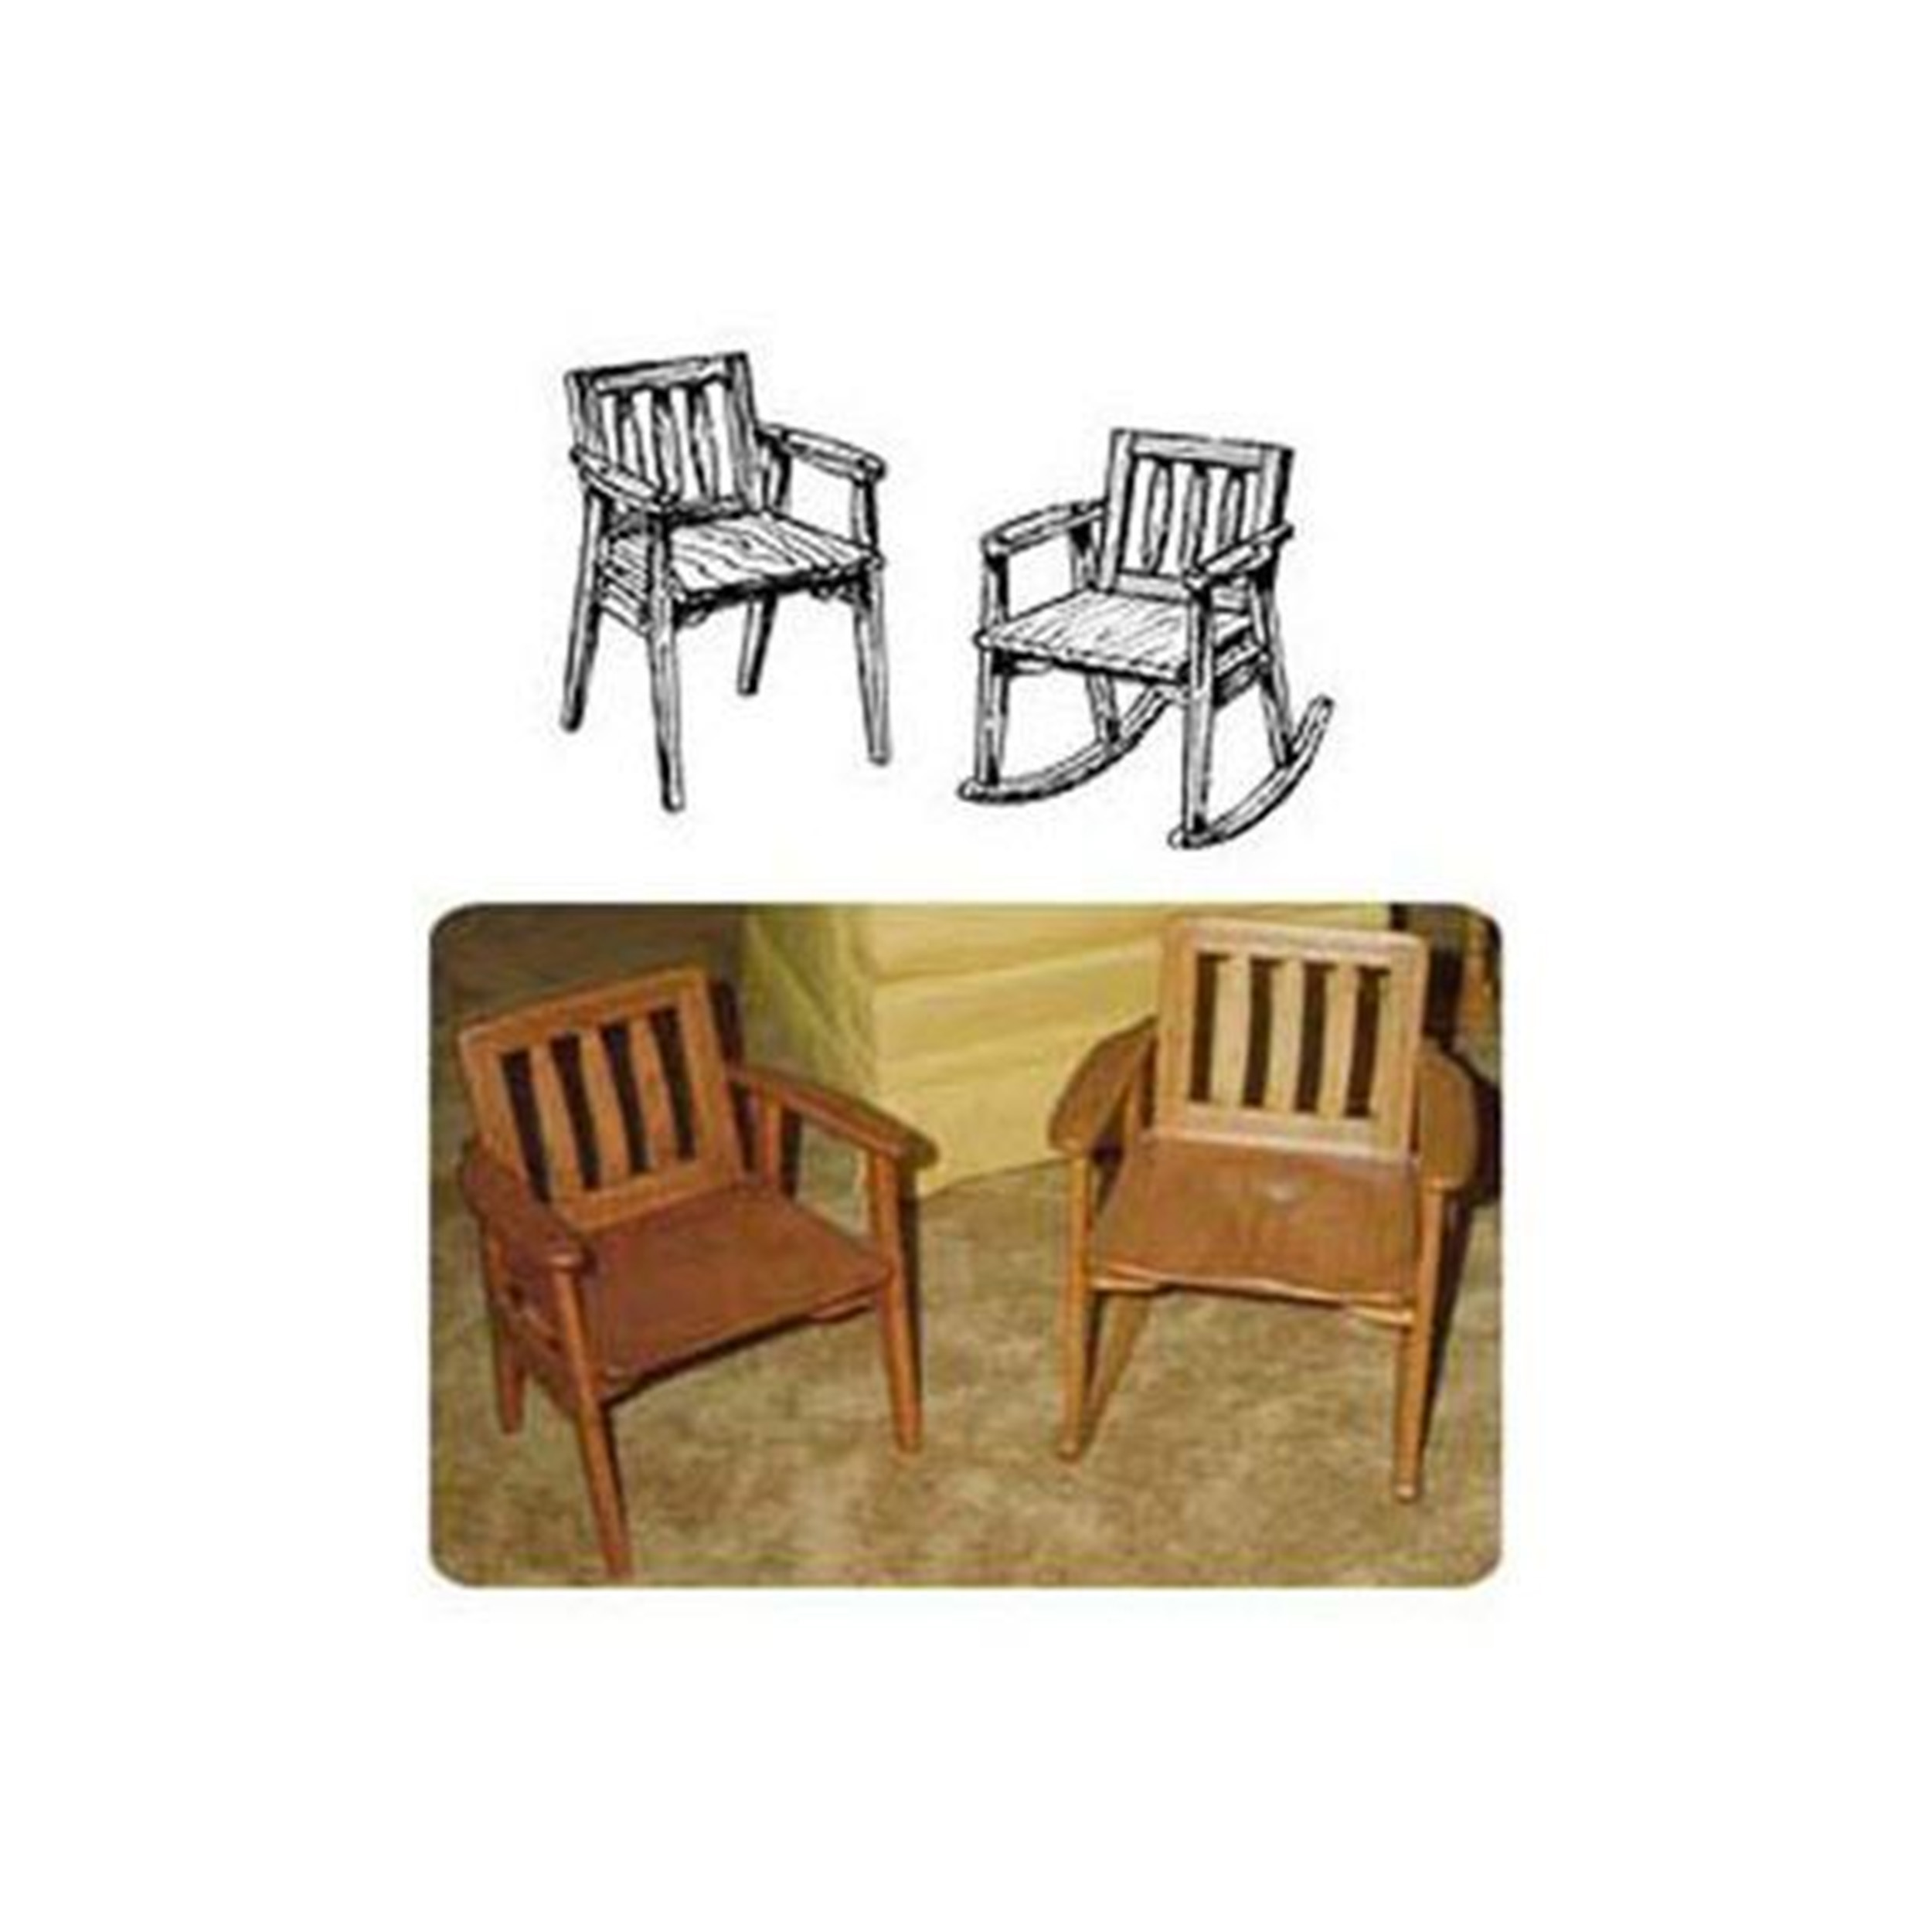 Woodworking Project Paper Plan to Build Child's Rocker with Arm Chair